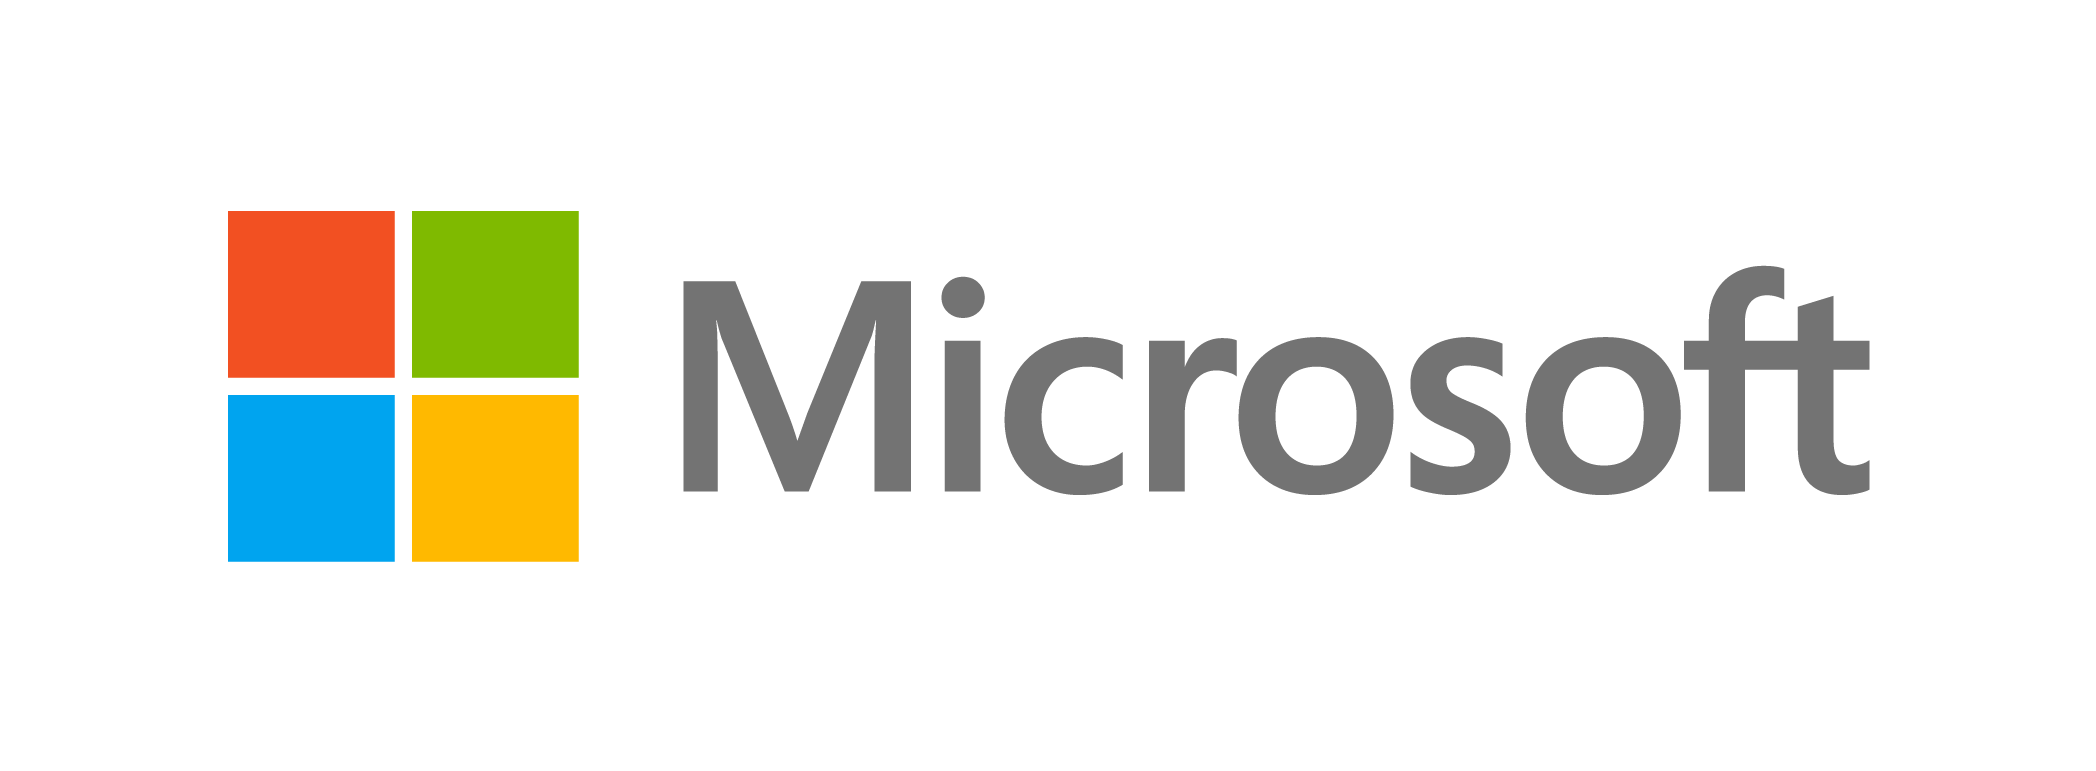 Microsoft Grants Increase Technology Access, Training for Students At African-American and Hispanic Universities Across the Nation Image.